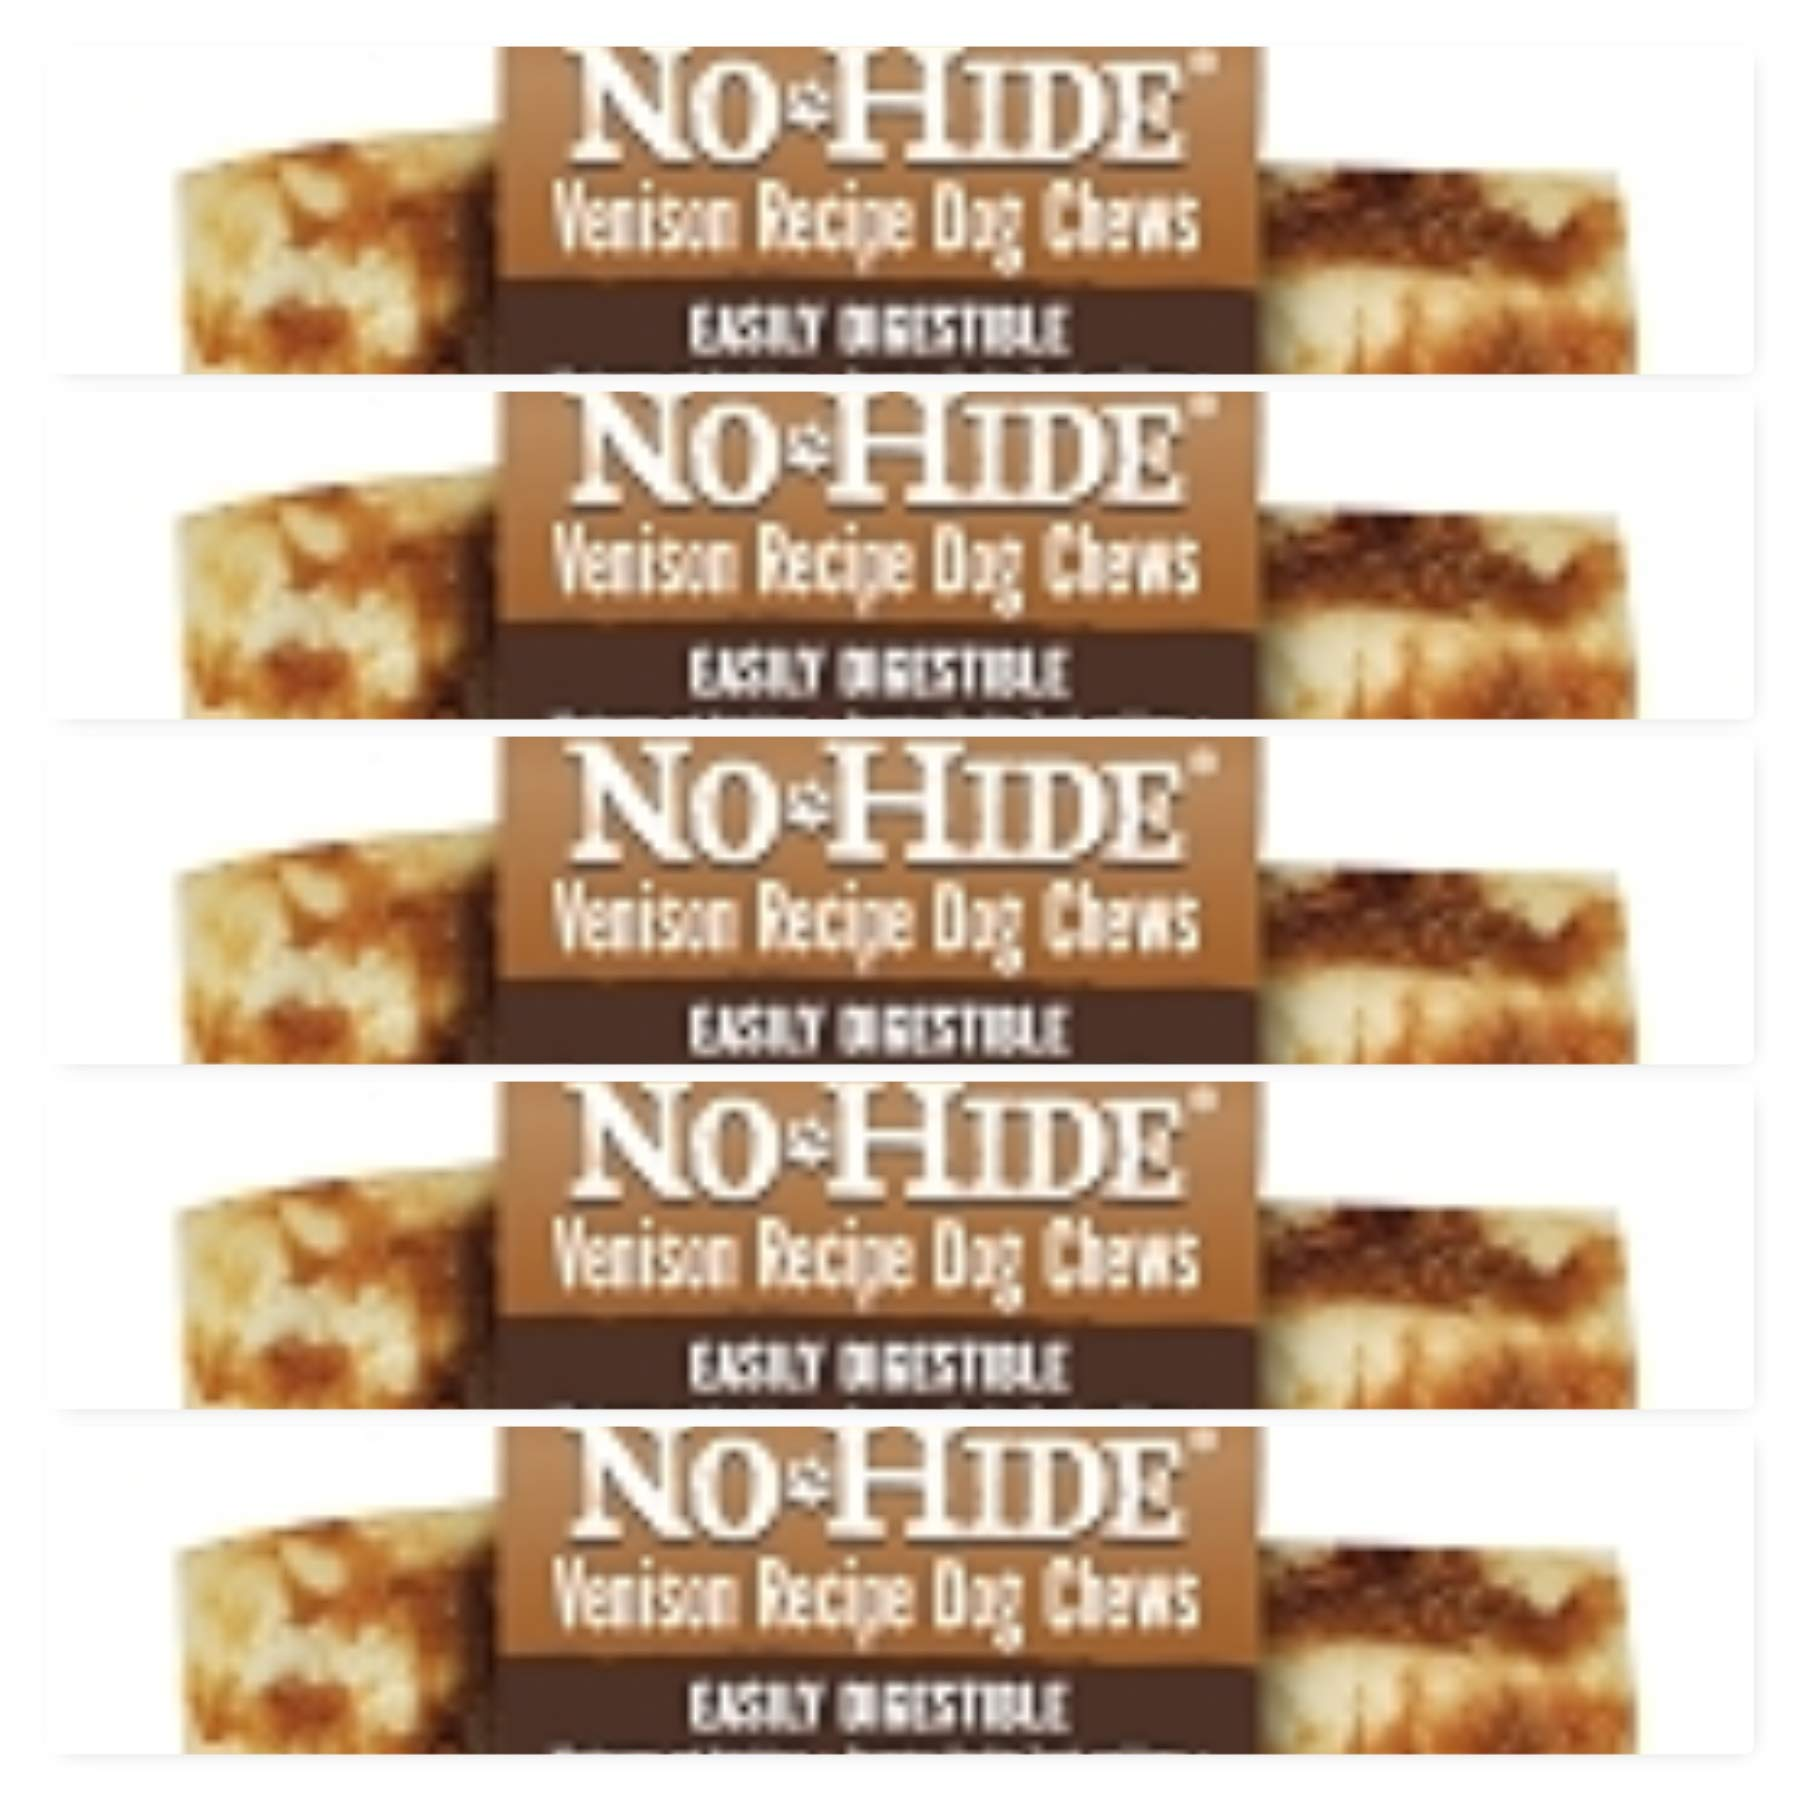 Earth Animal No Hide Raw Hide Dog Chews, Dog Treats. (Venison) 5 Pack 4 Inch ea. The Safe Alternative to Raw Hide!!! by Earth Animal (Image #1)